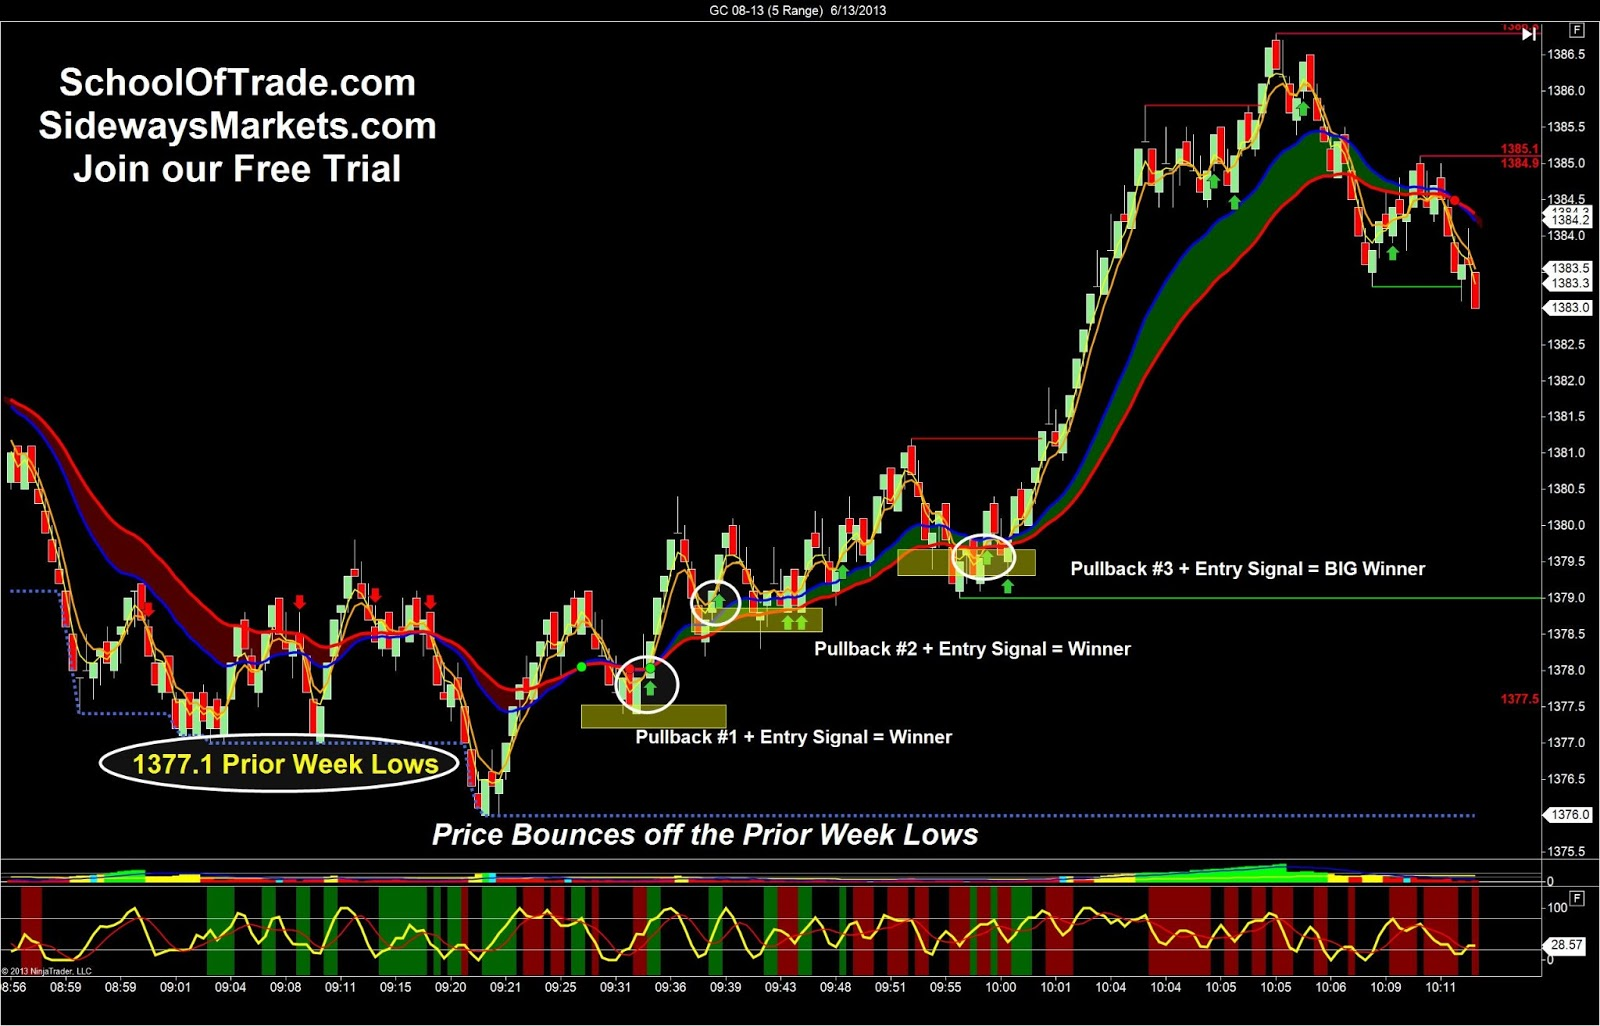 Once a day trading strategy